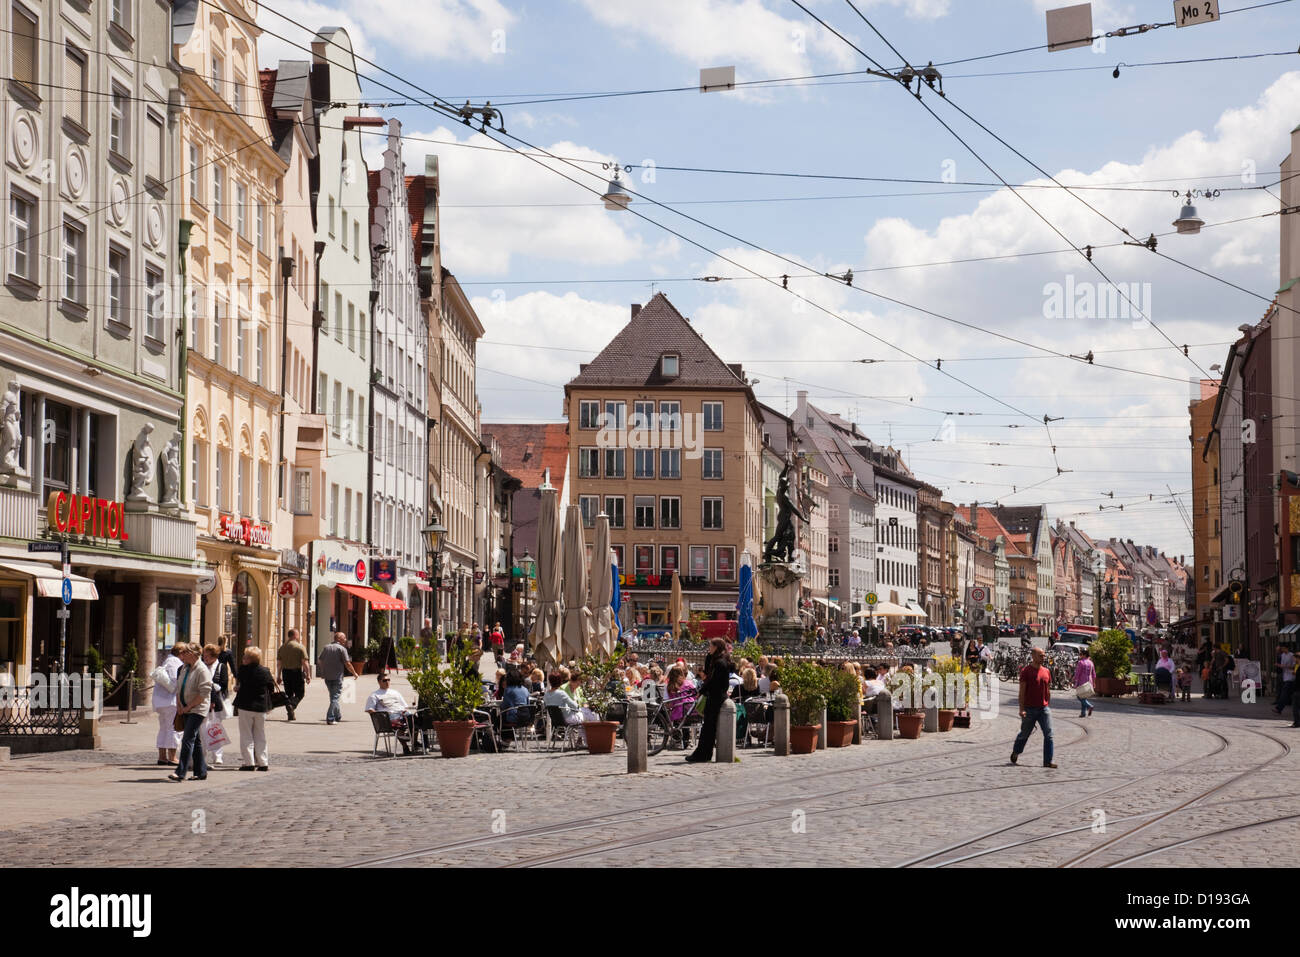 City centre street scene with overhead tram lines and people dining outside in pavement cafes in Augsburg, Bavaria, - Stock Image